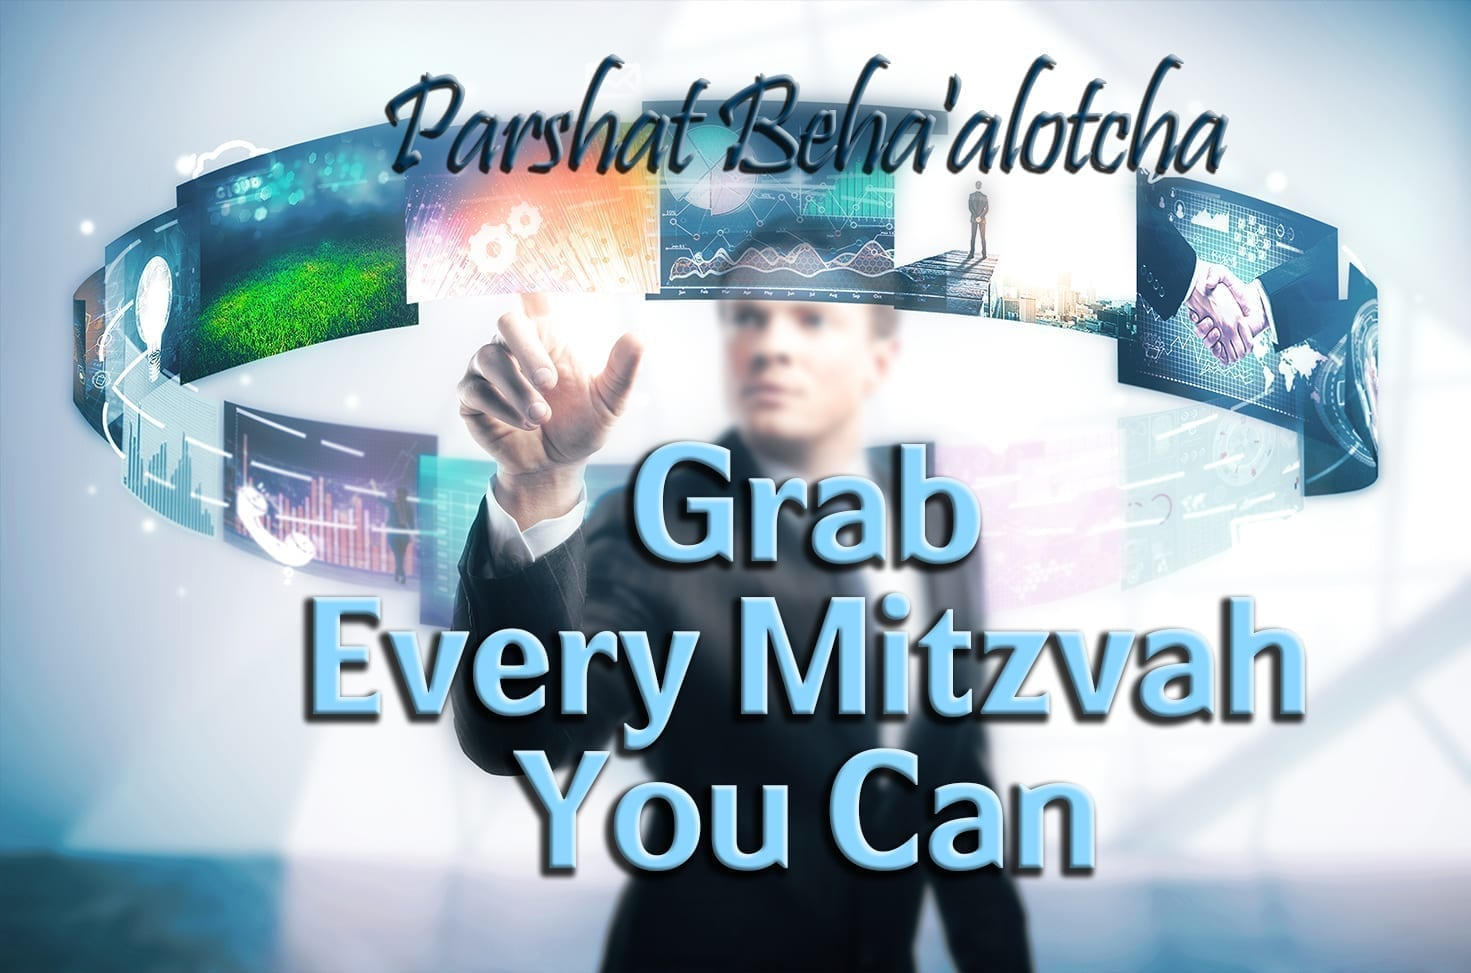 Photo of Parshat Beha'alotcha – Grab Every Mitzvah You Can